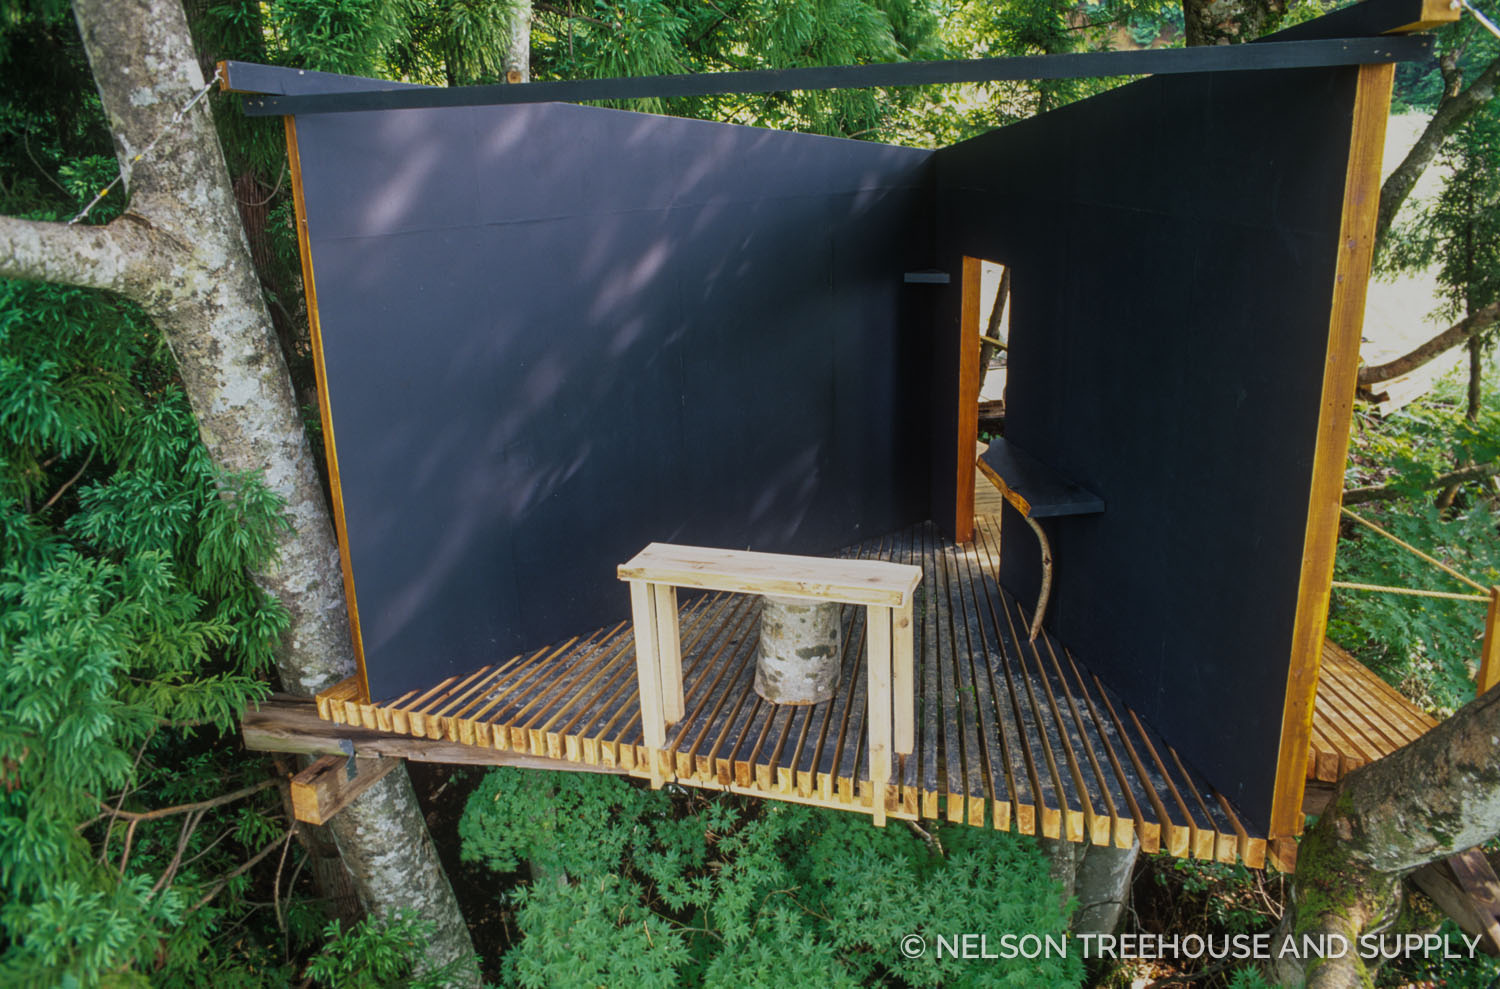 This treehouse in Japan, built by Taka Kobayashi,exemplifies the pared-down, outdoorsy quality of the treehouse life.